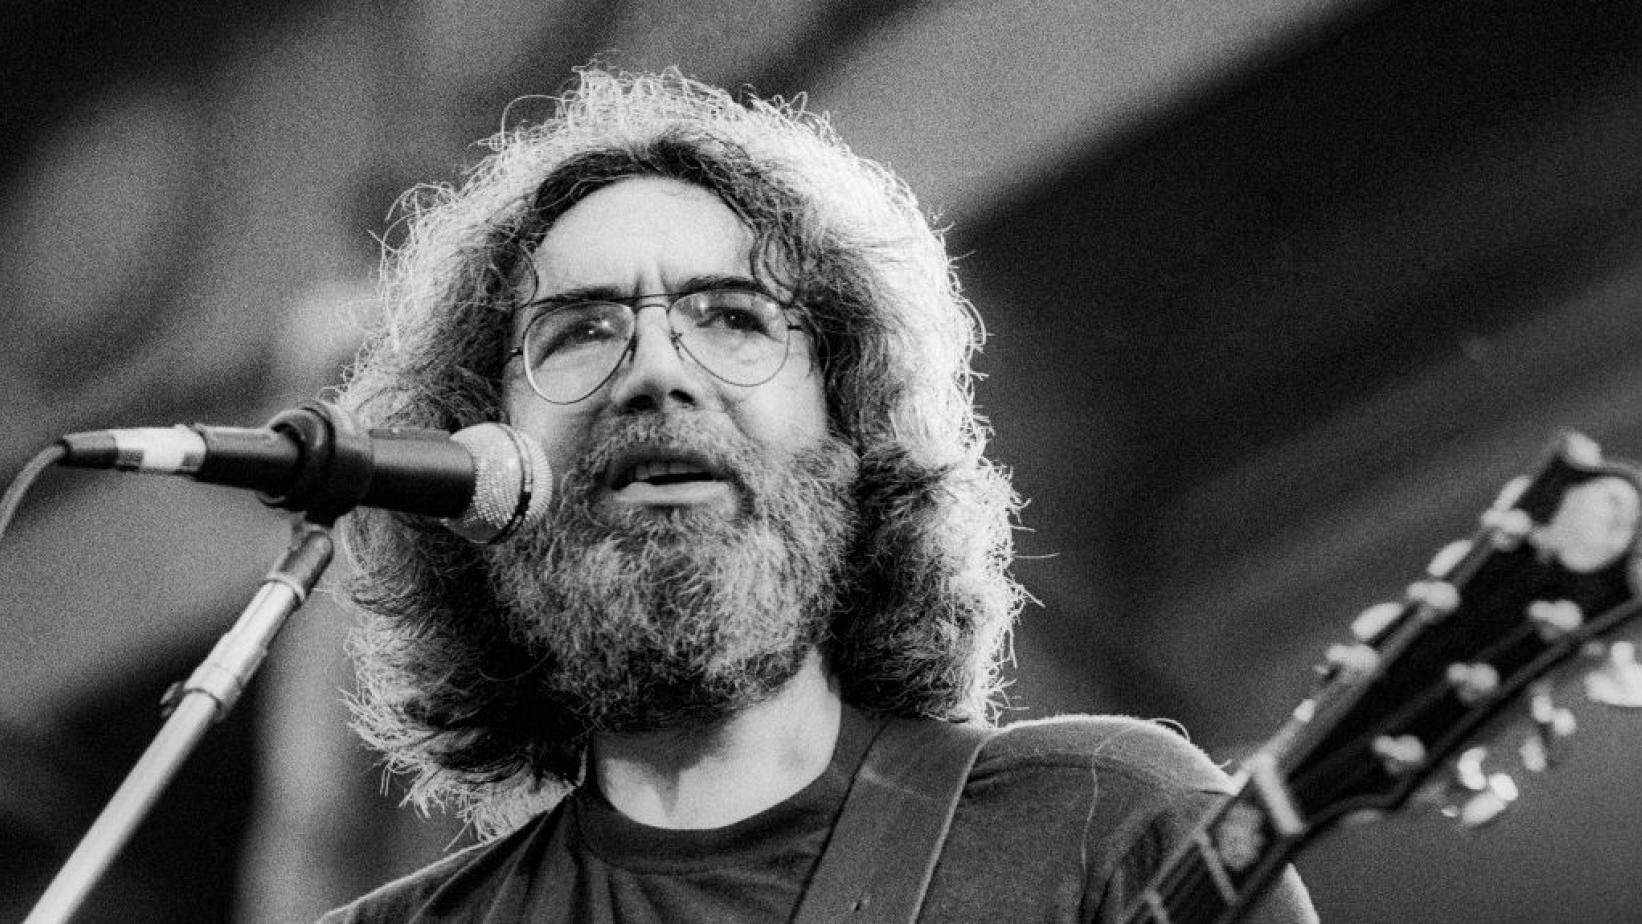 Jerry Garcia performs with the Grateful Dead in 1981